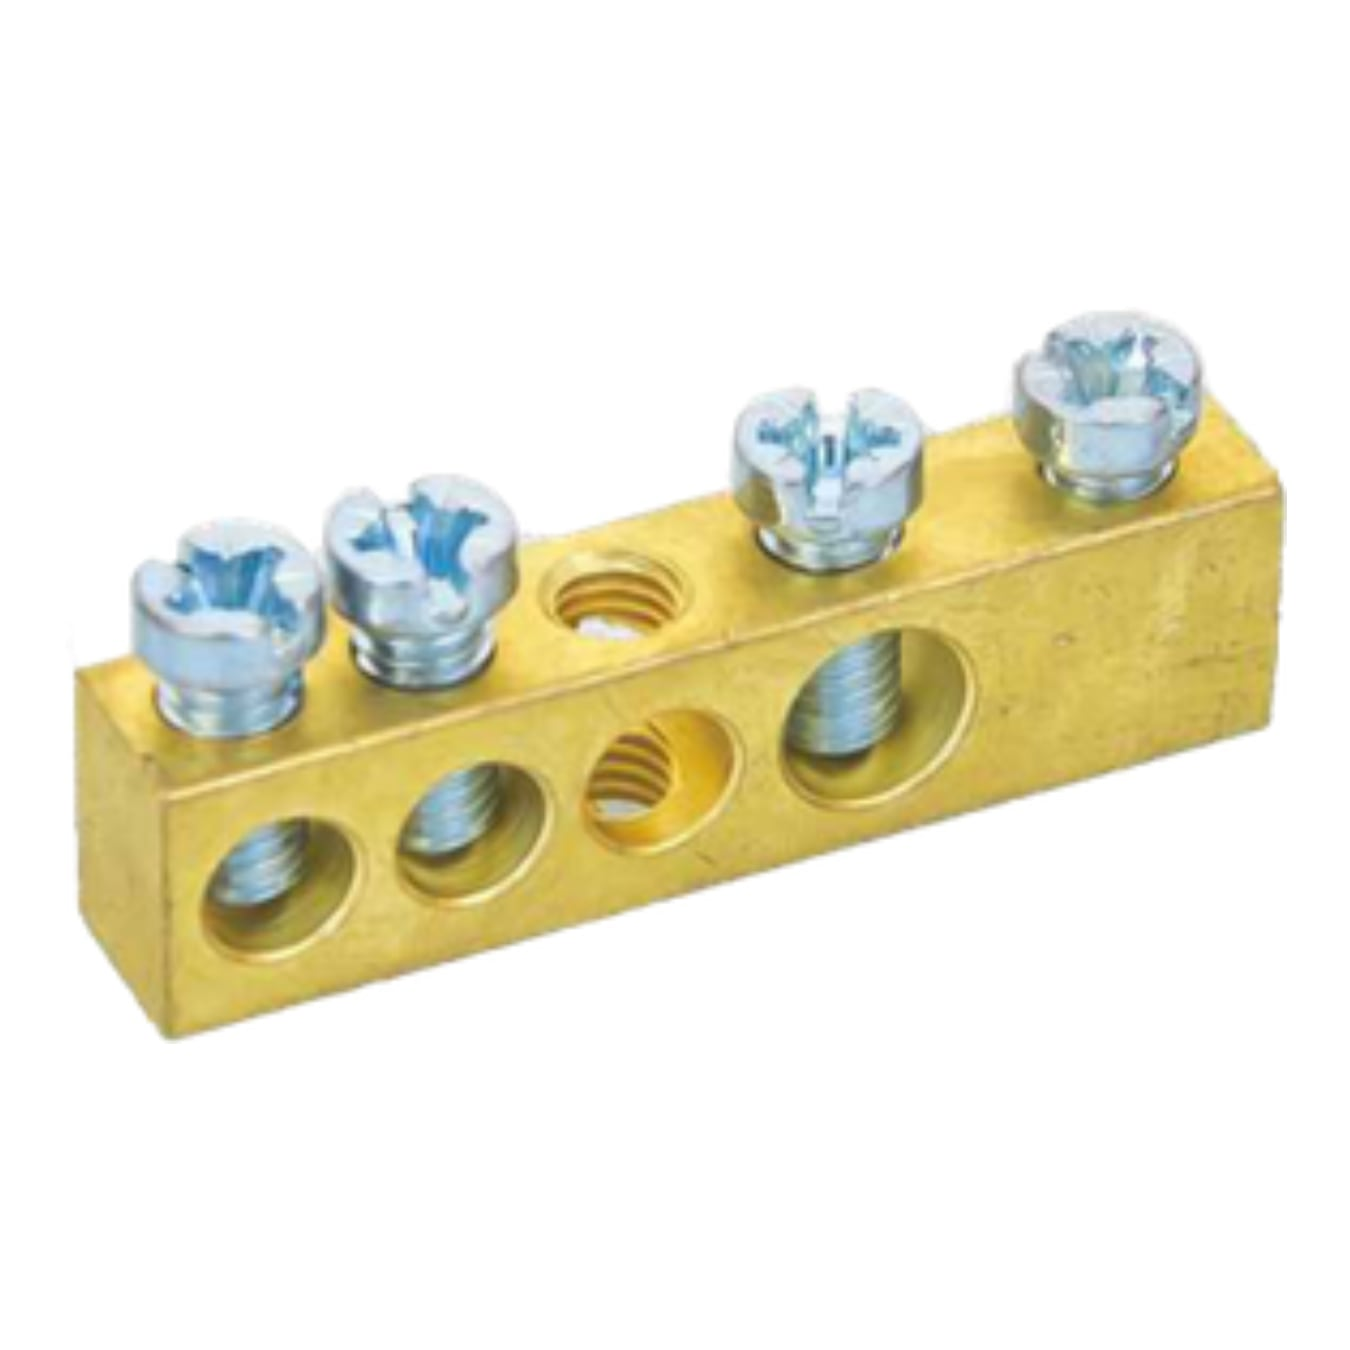 Grounding Block - Forming and Precast Concrete Accessories by Tengco, Inc.